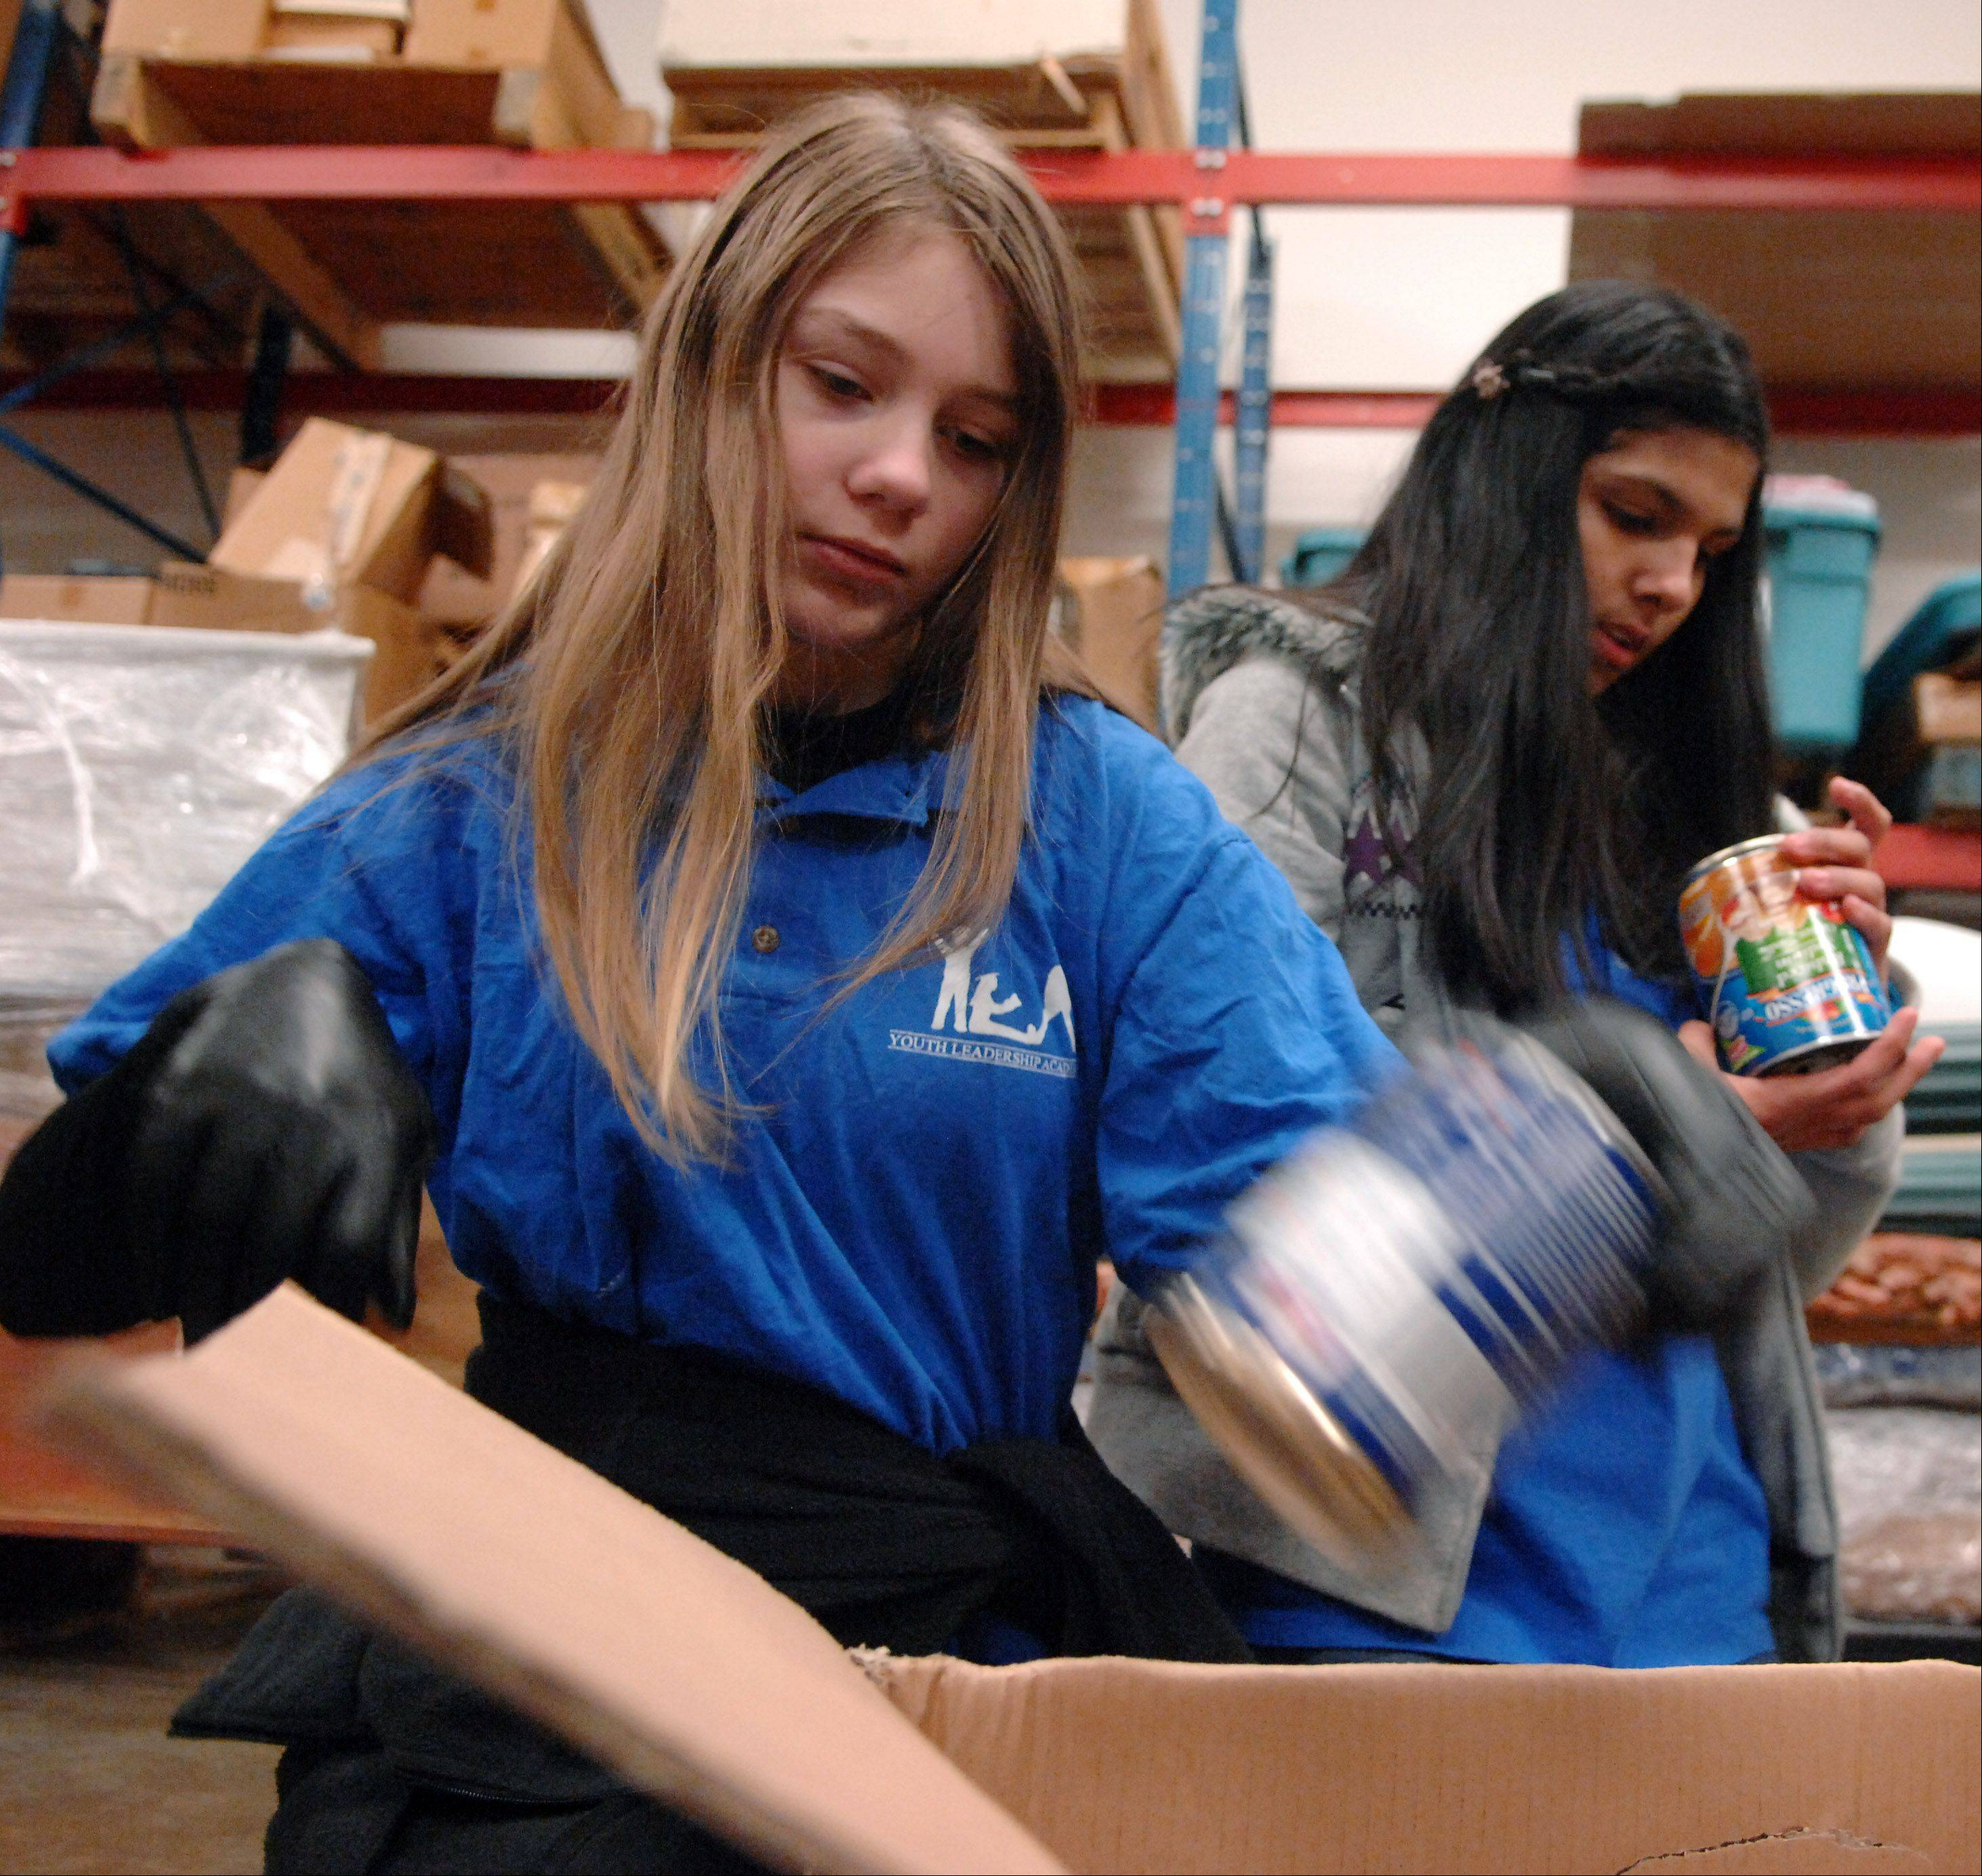 Dundee-Crown freshman Amanda Craig, left, and Carpentersville Middle School seventh-grader Elsie Guerra check expiration dates as donated food arrives Monday at the Church of the Brethren general offices in Elgin. Members of the Elgin Youth Leadership Academy collected and sorted food that was to be delivered to six local food pantries, with half of it going to Food for Greater Elgin.